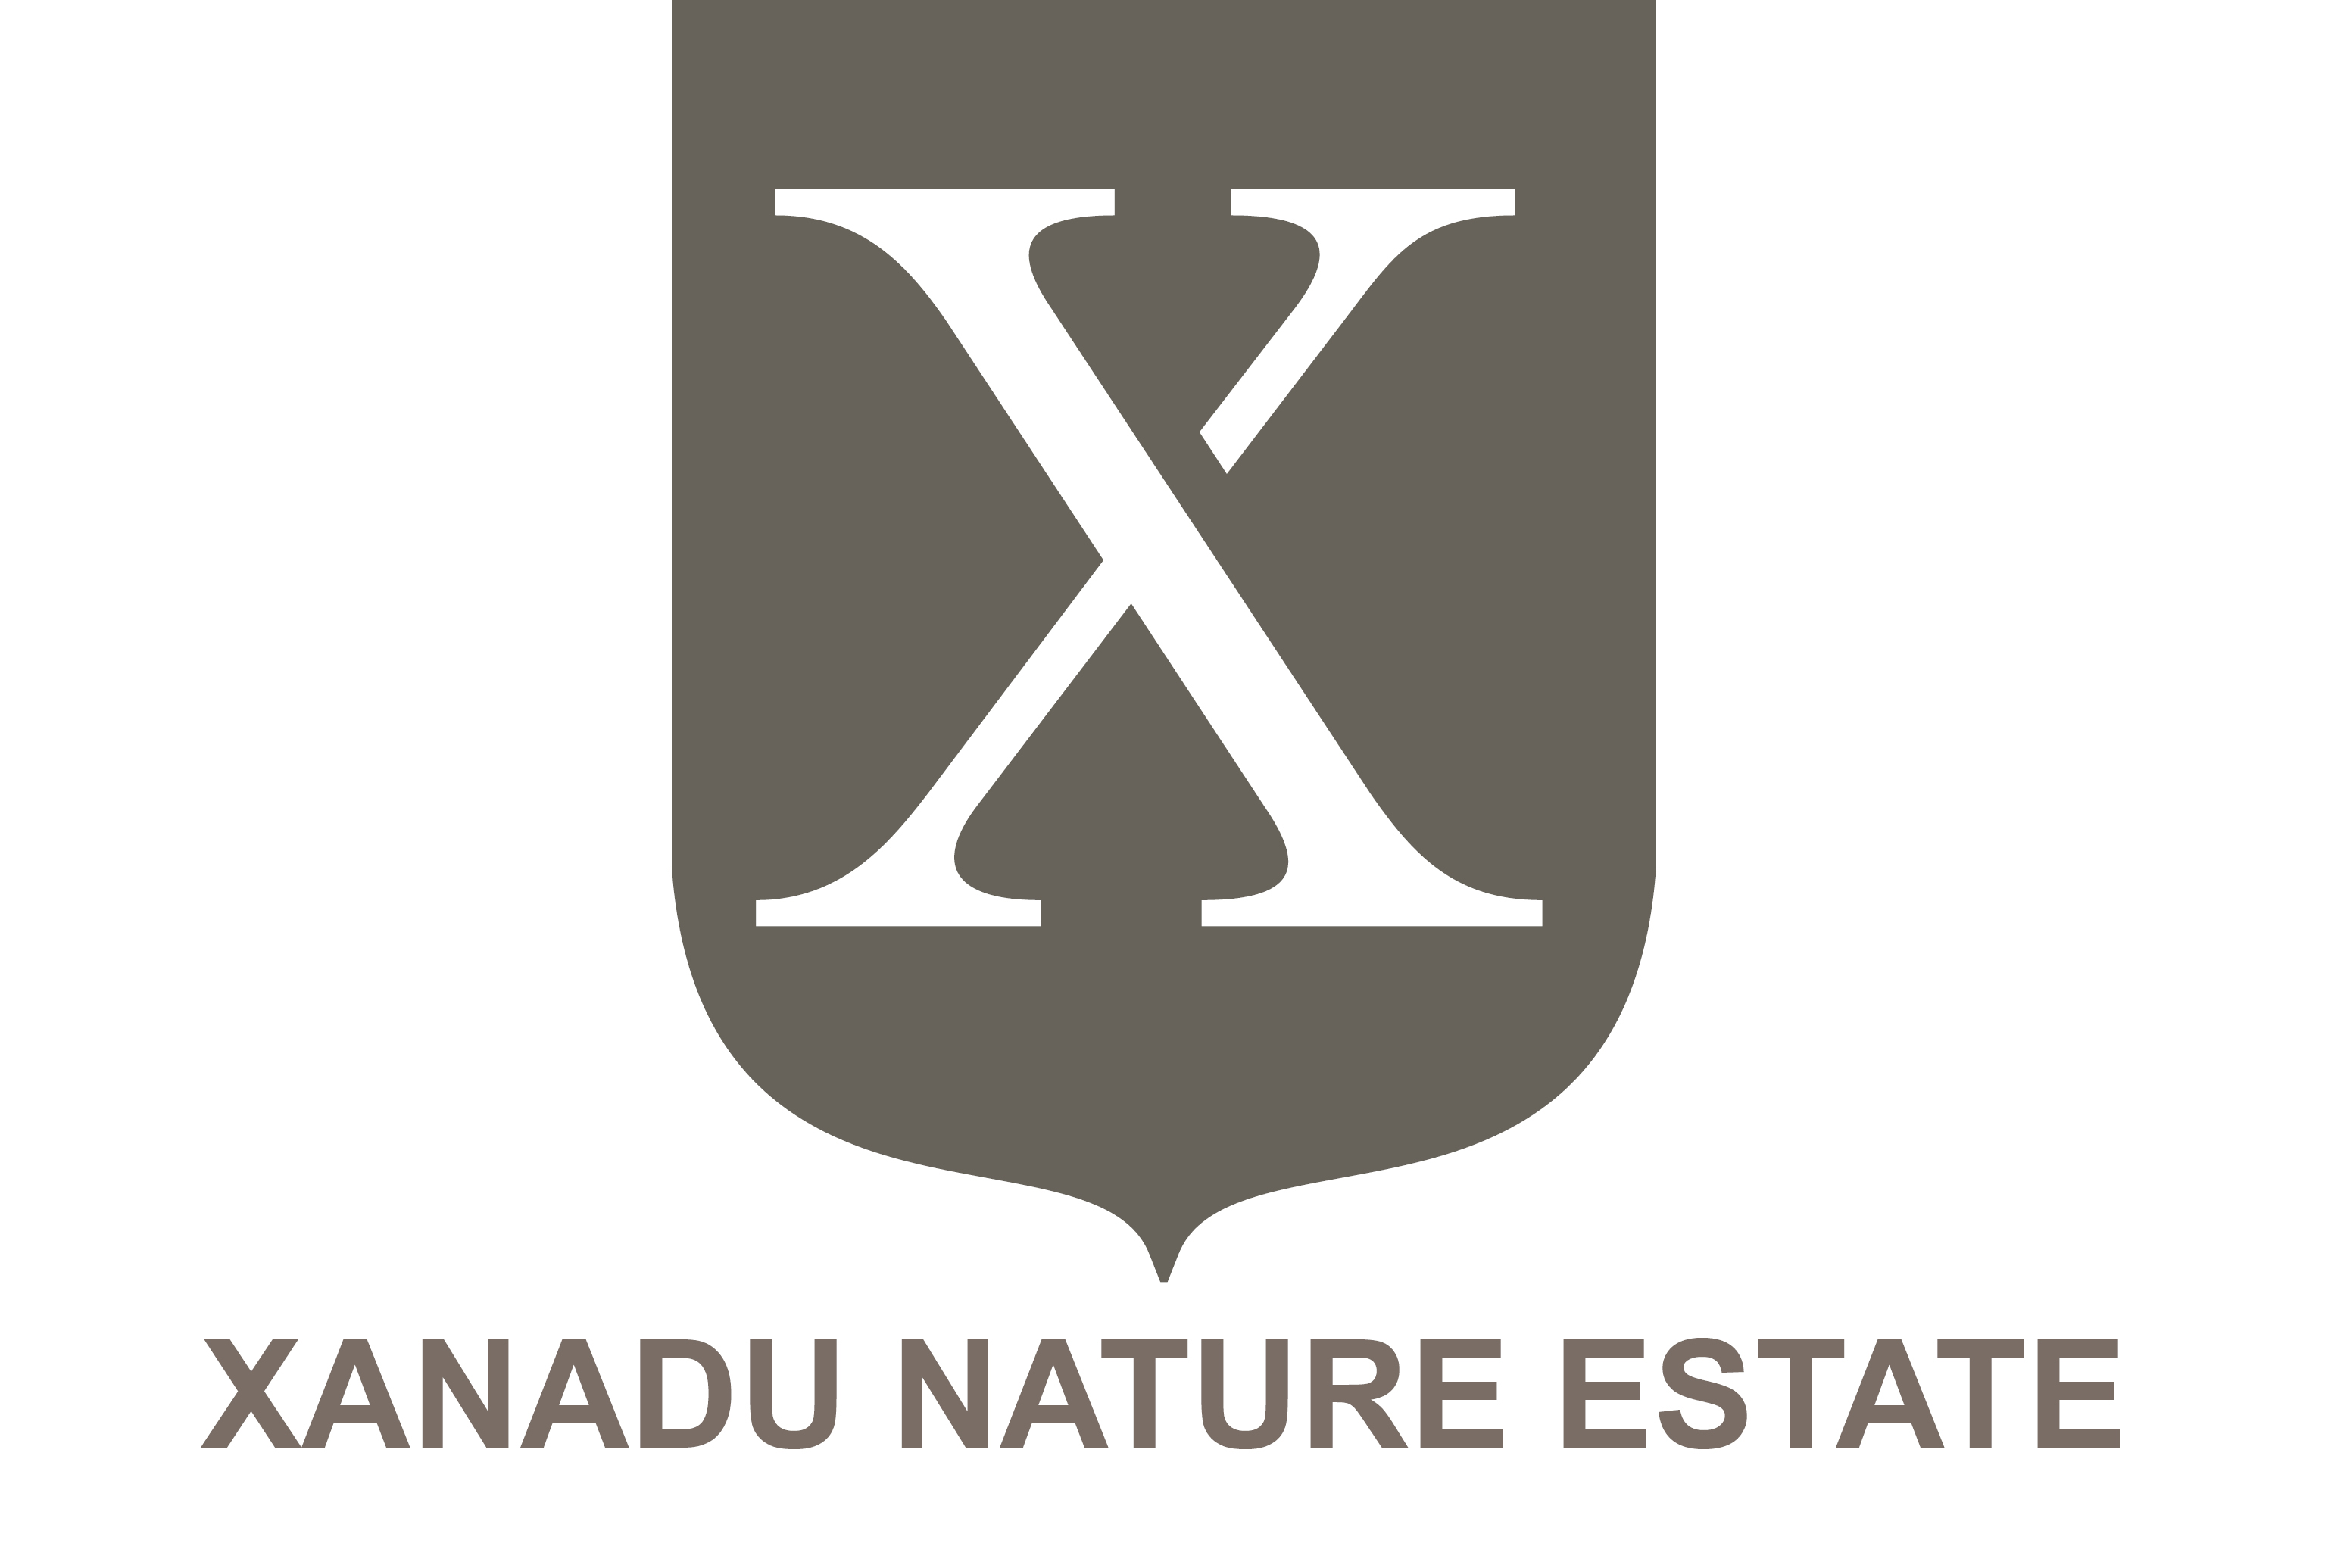 Xanadu Nature Estate